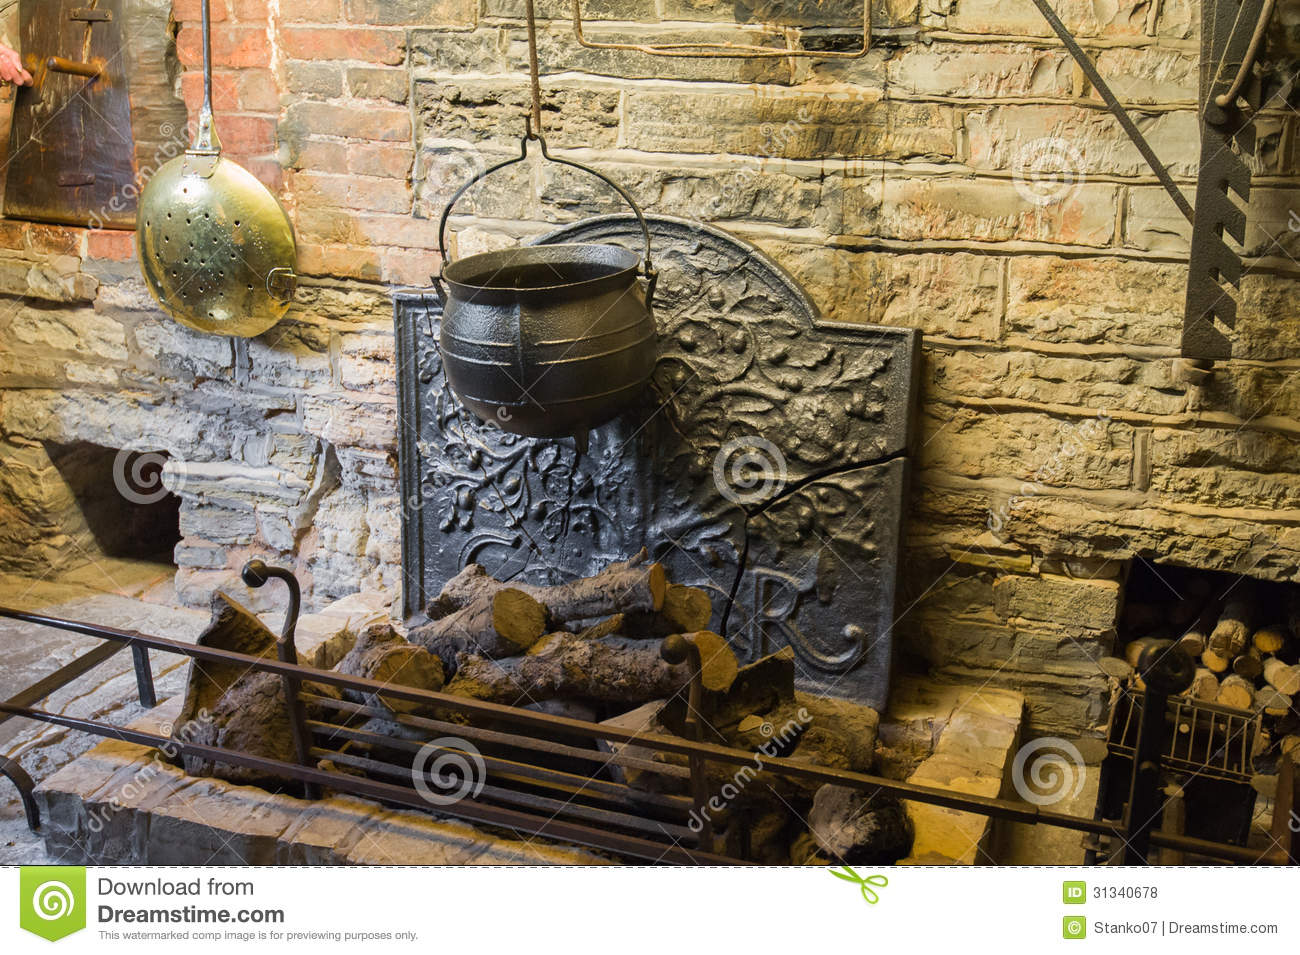 Cottage Kitchens in addition Uma Casa Pequena E Simples 1913 furthermore House Plans 1001 1500 Sq Ft as well Royalty Free Stock Photos Old Fashioned Horse Drawn Covered Wagon American Fkag Image39038508 as well Rose House Inn South Africa. on old fashioned farmhouse plans